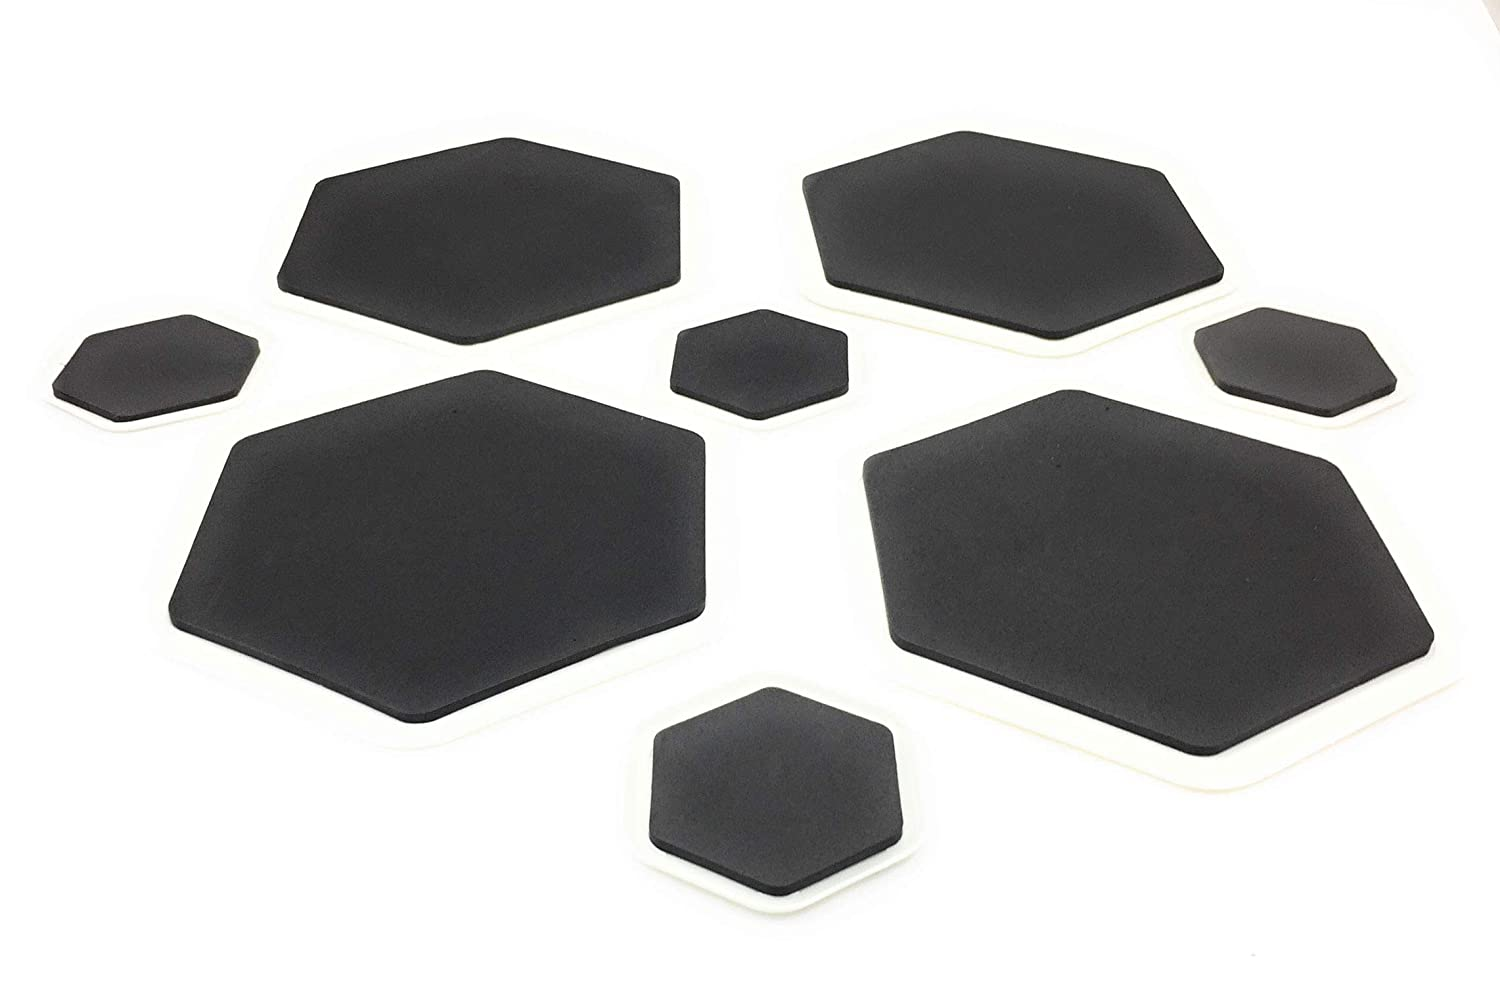 Furniture Sliders Set of 8 Moving Pads Gliders Help Move Desks Dressers Refrigerators Couches Chairs Appliances with these Mover Coaster Discs over Hardwood Tiled Carpeted Floors by Perfect Life Ideas